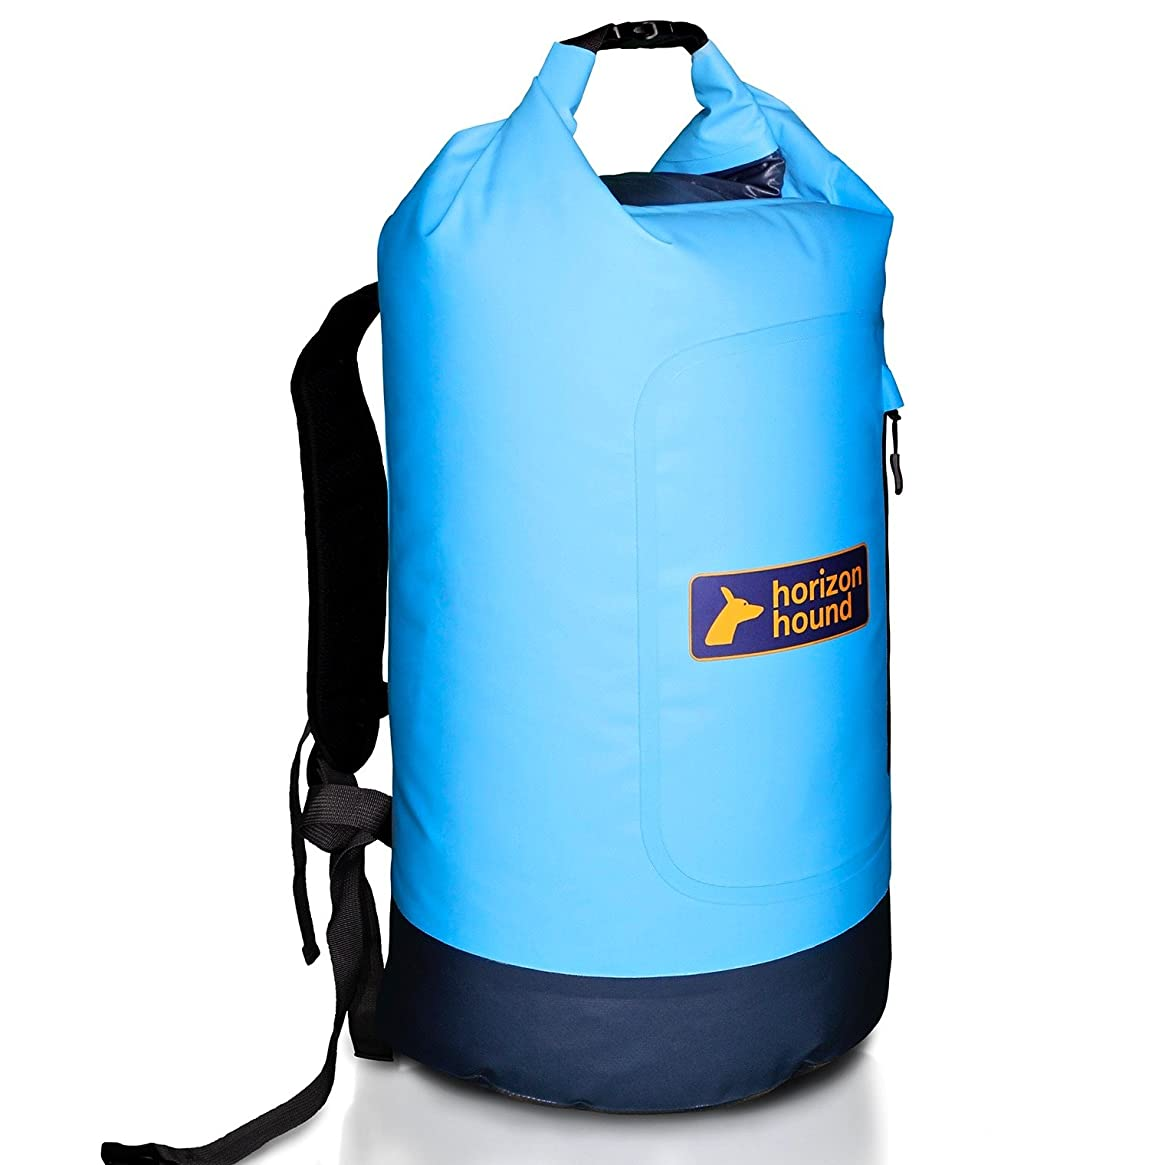 28 LITRE ALL WEATHER DRY BAG - Premium Waterproof Back Pack with padded shoulder straps and two Zipped Pockets. Perfect Roll Top Dry Bag for the Beach, Camping, Fishing, Kayaking or Swimming.